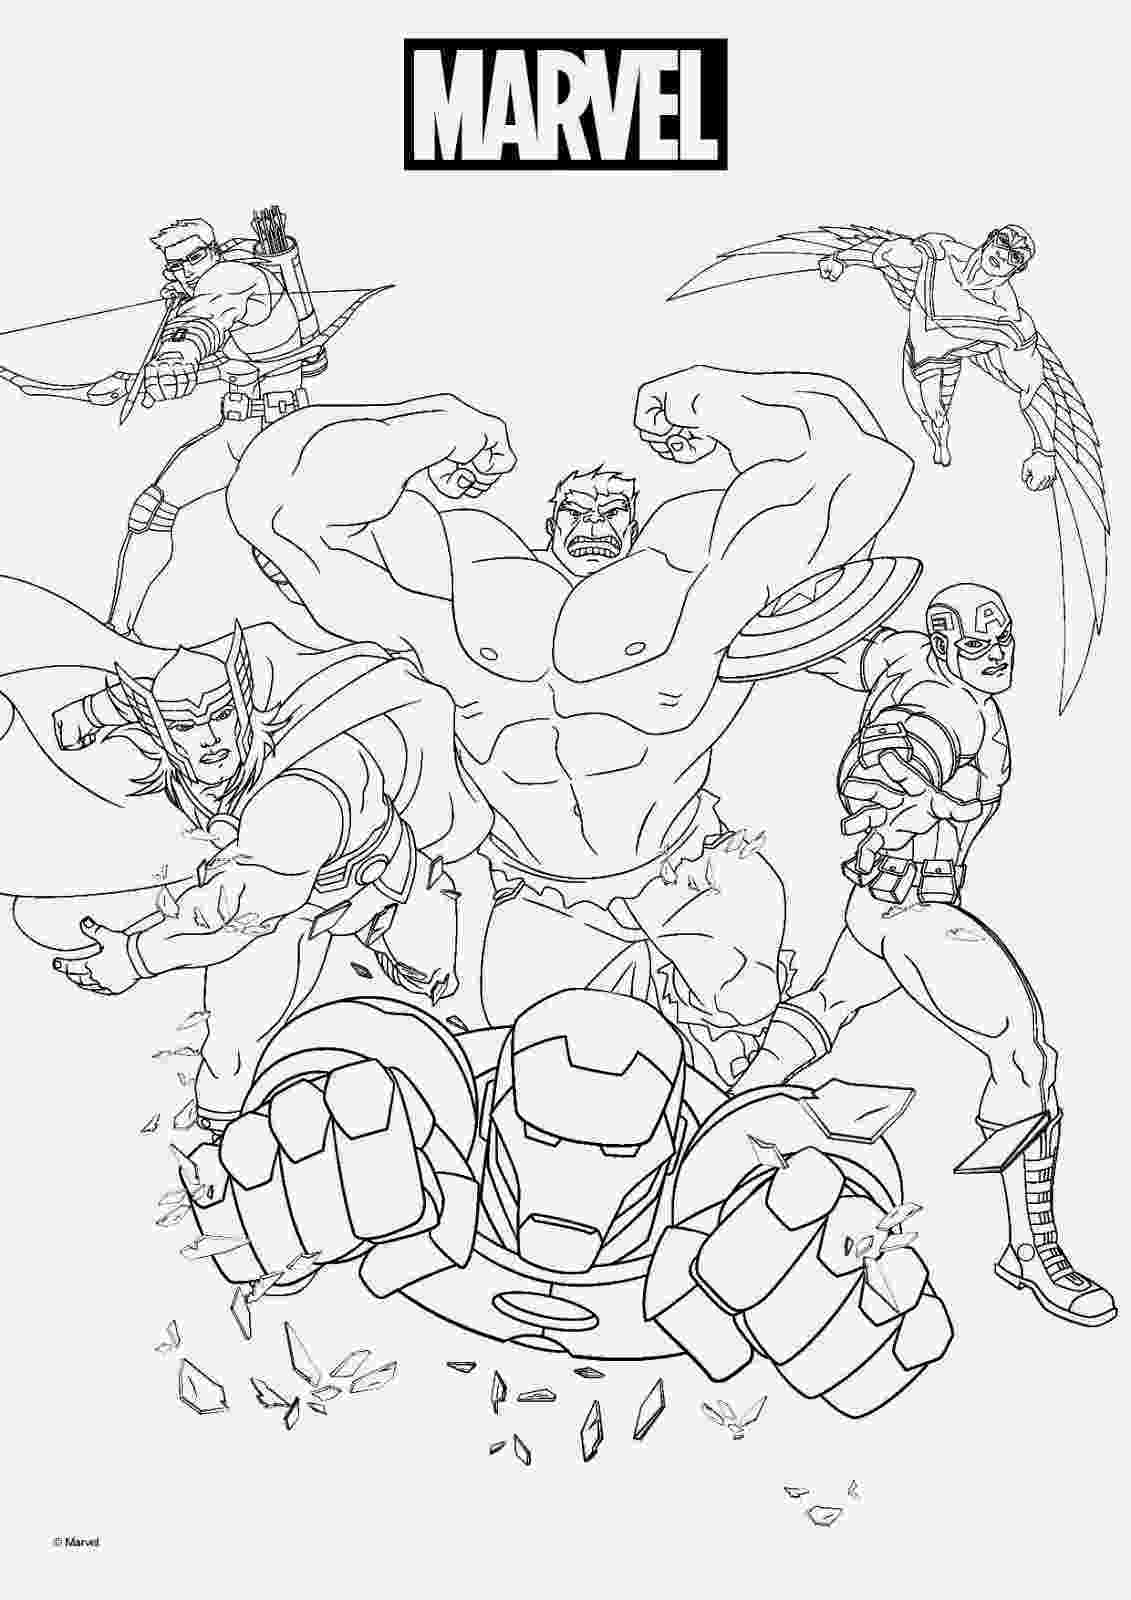 marvel coloring page marvel coloring pages best coloring pages for kids coloring marvel page